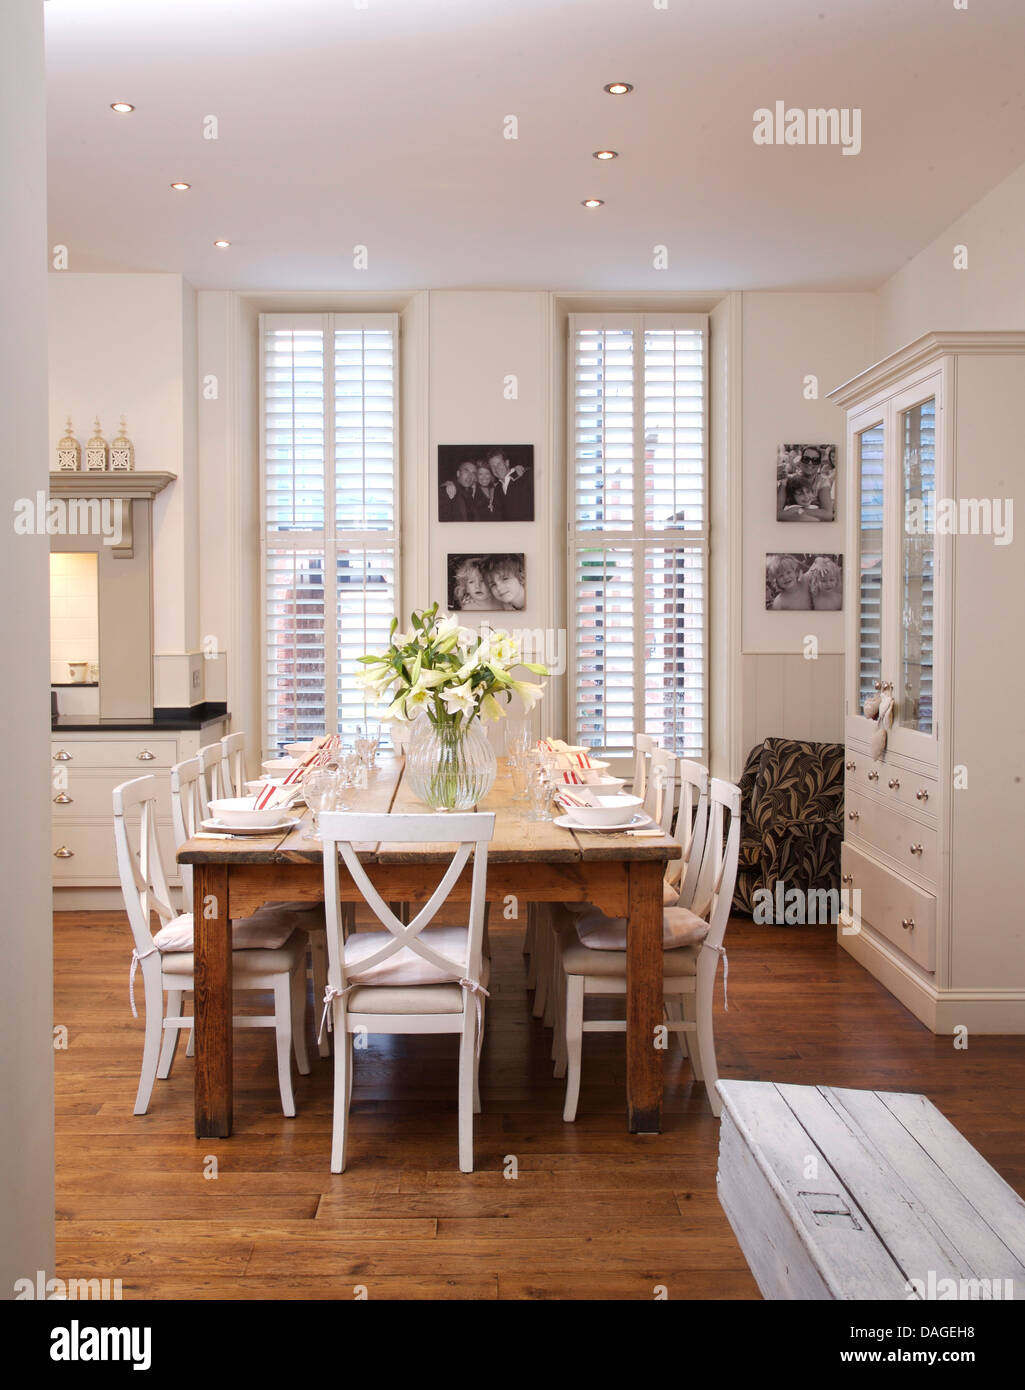 white chairs at simple wood table in modern white kitchen dining room DAGEH8